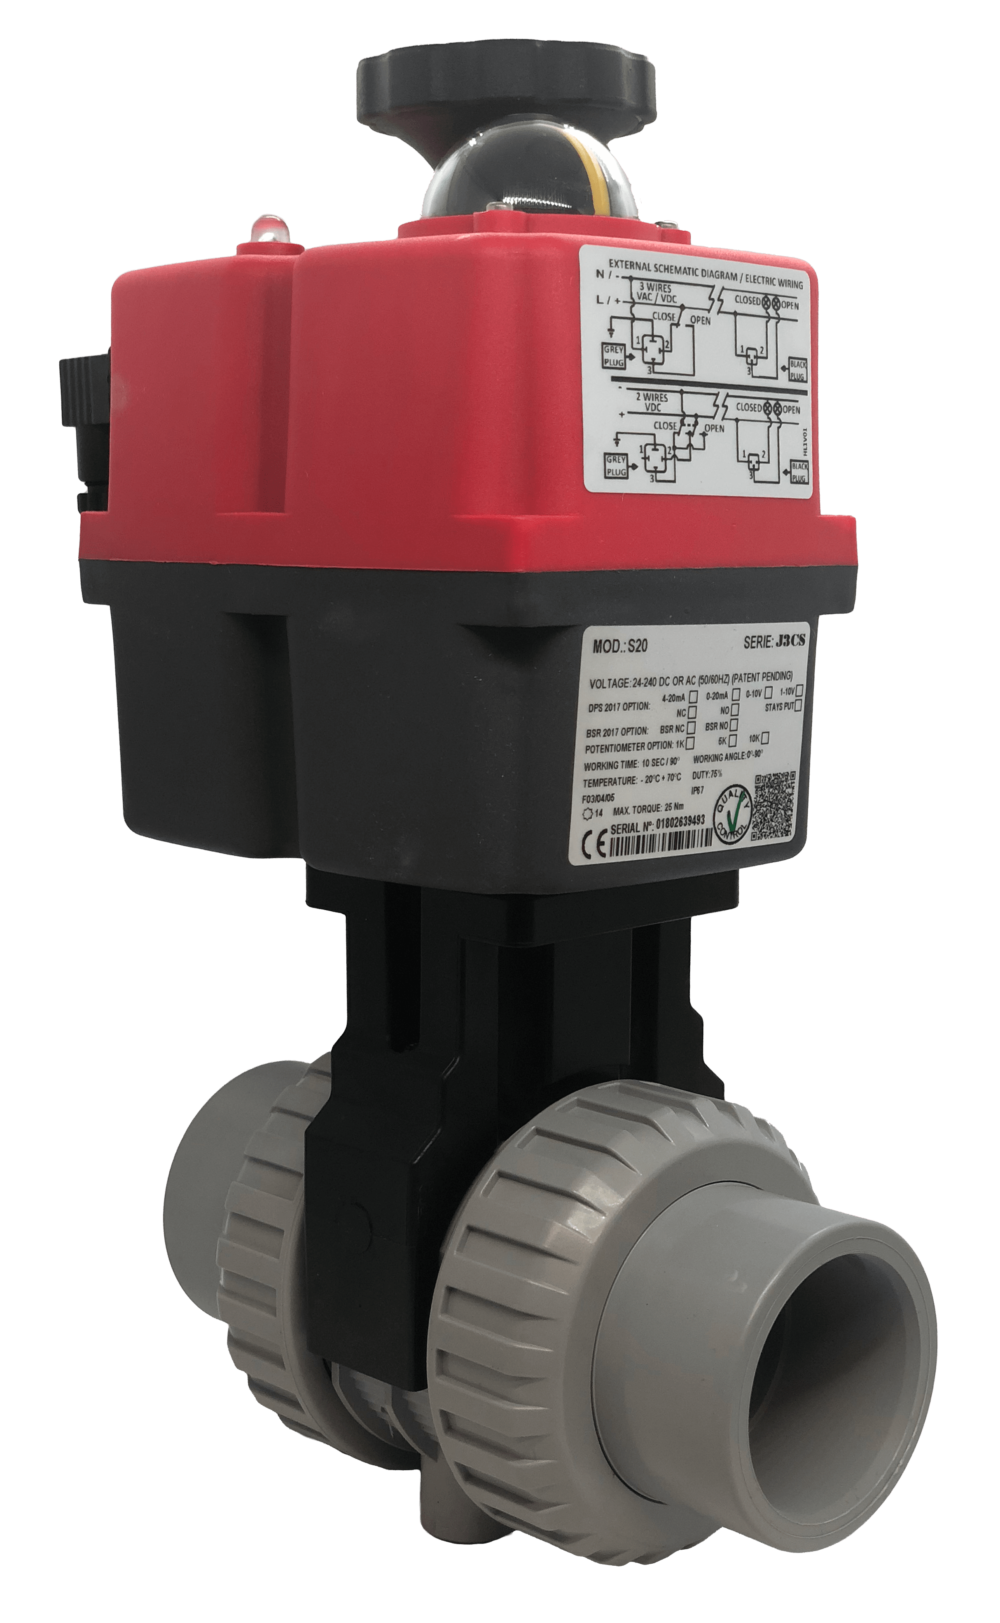 Cepex Extreme Motorized CPVC Ball Valve with J+J Electric Actuator from AVS